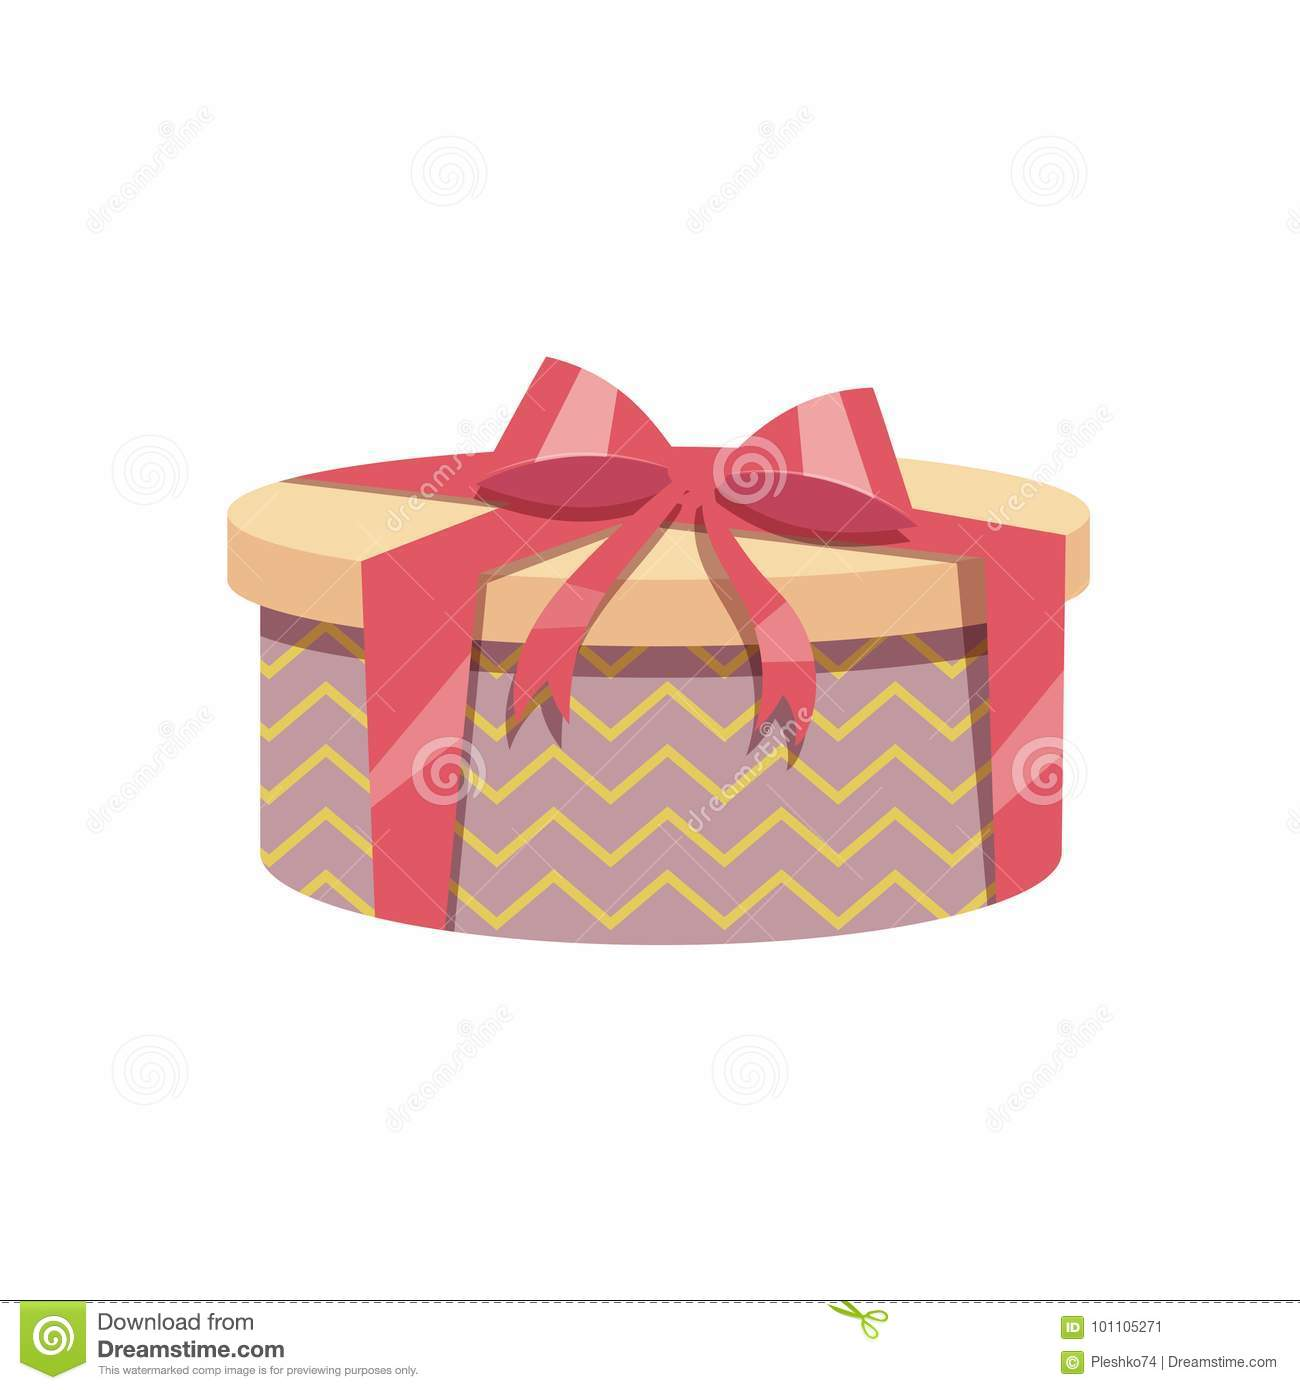 Cartoon Trendy Design Vintage Round Gift Box With Red Ribbon And Bow